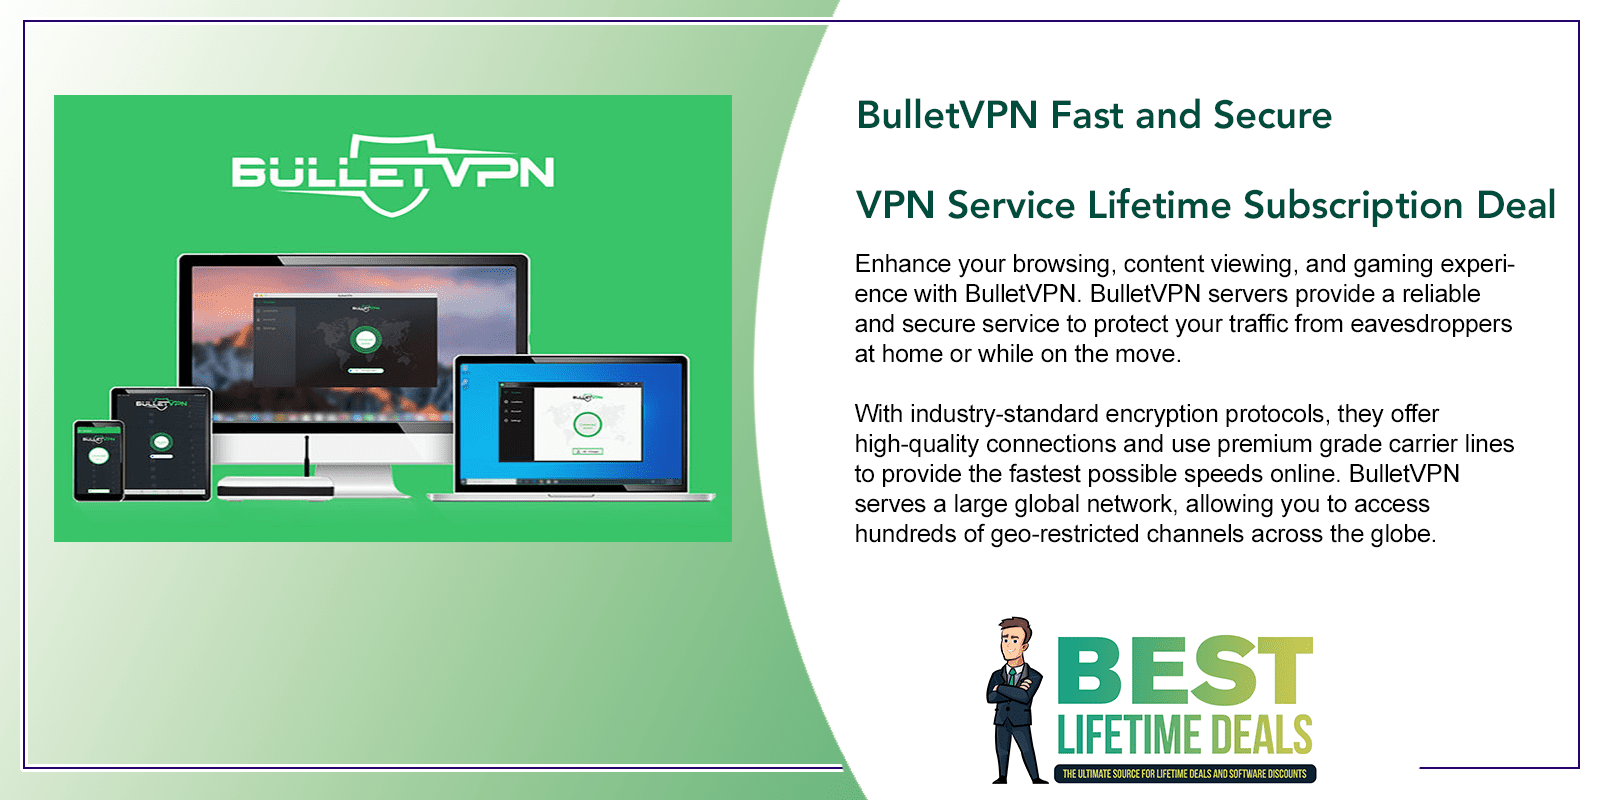 BulletVPN Fast and Secure VPN Service Featured Image